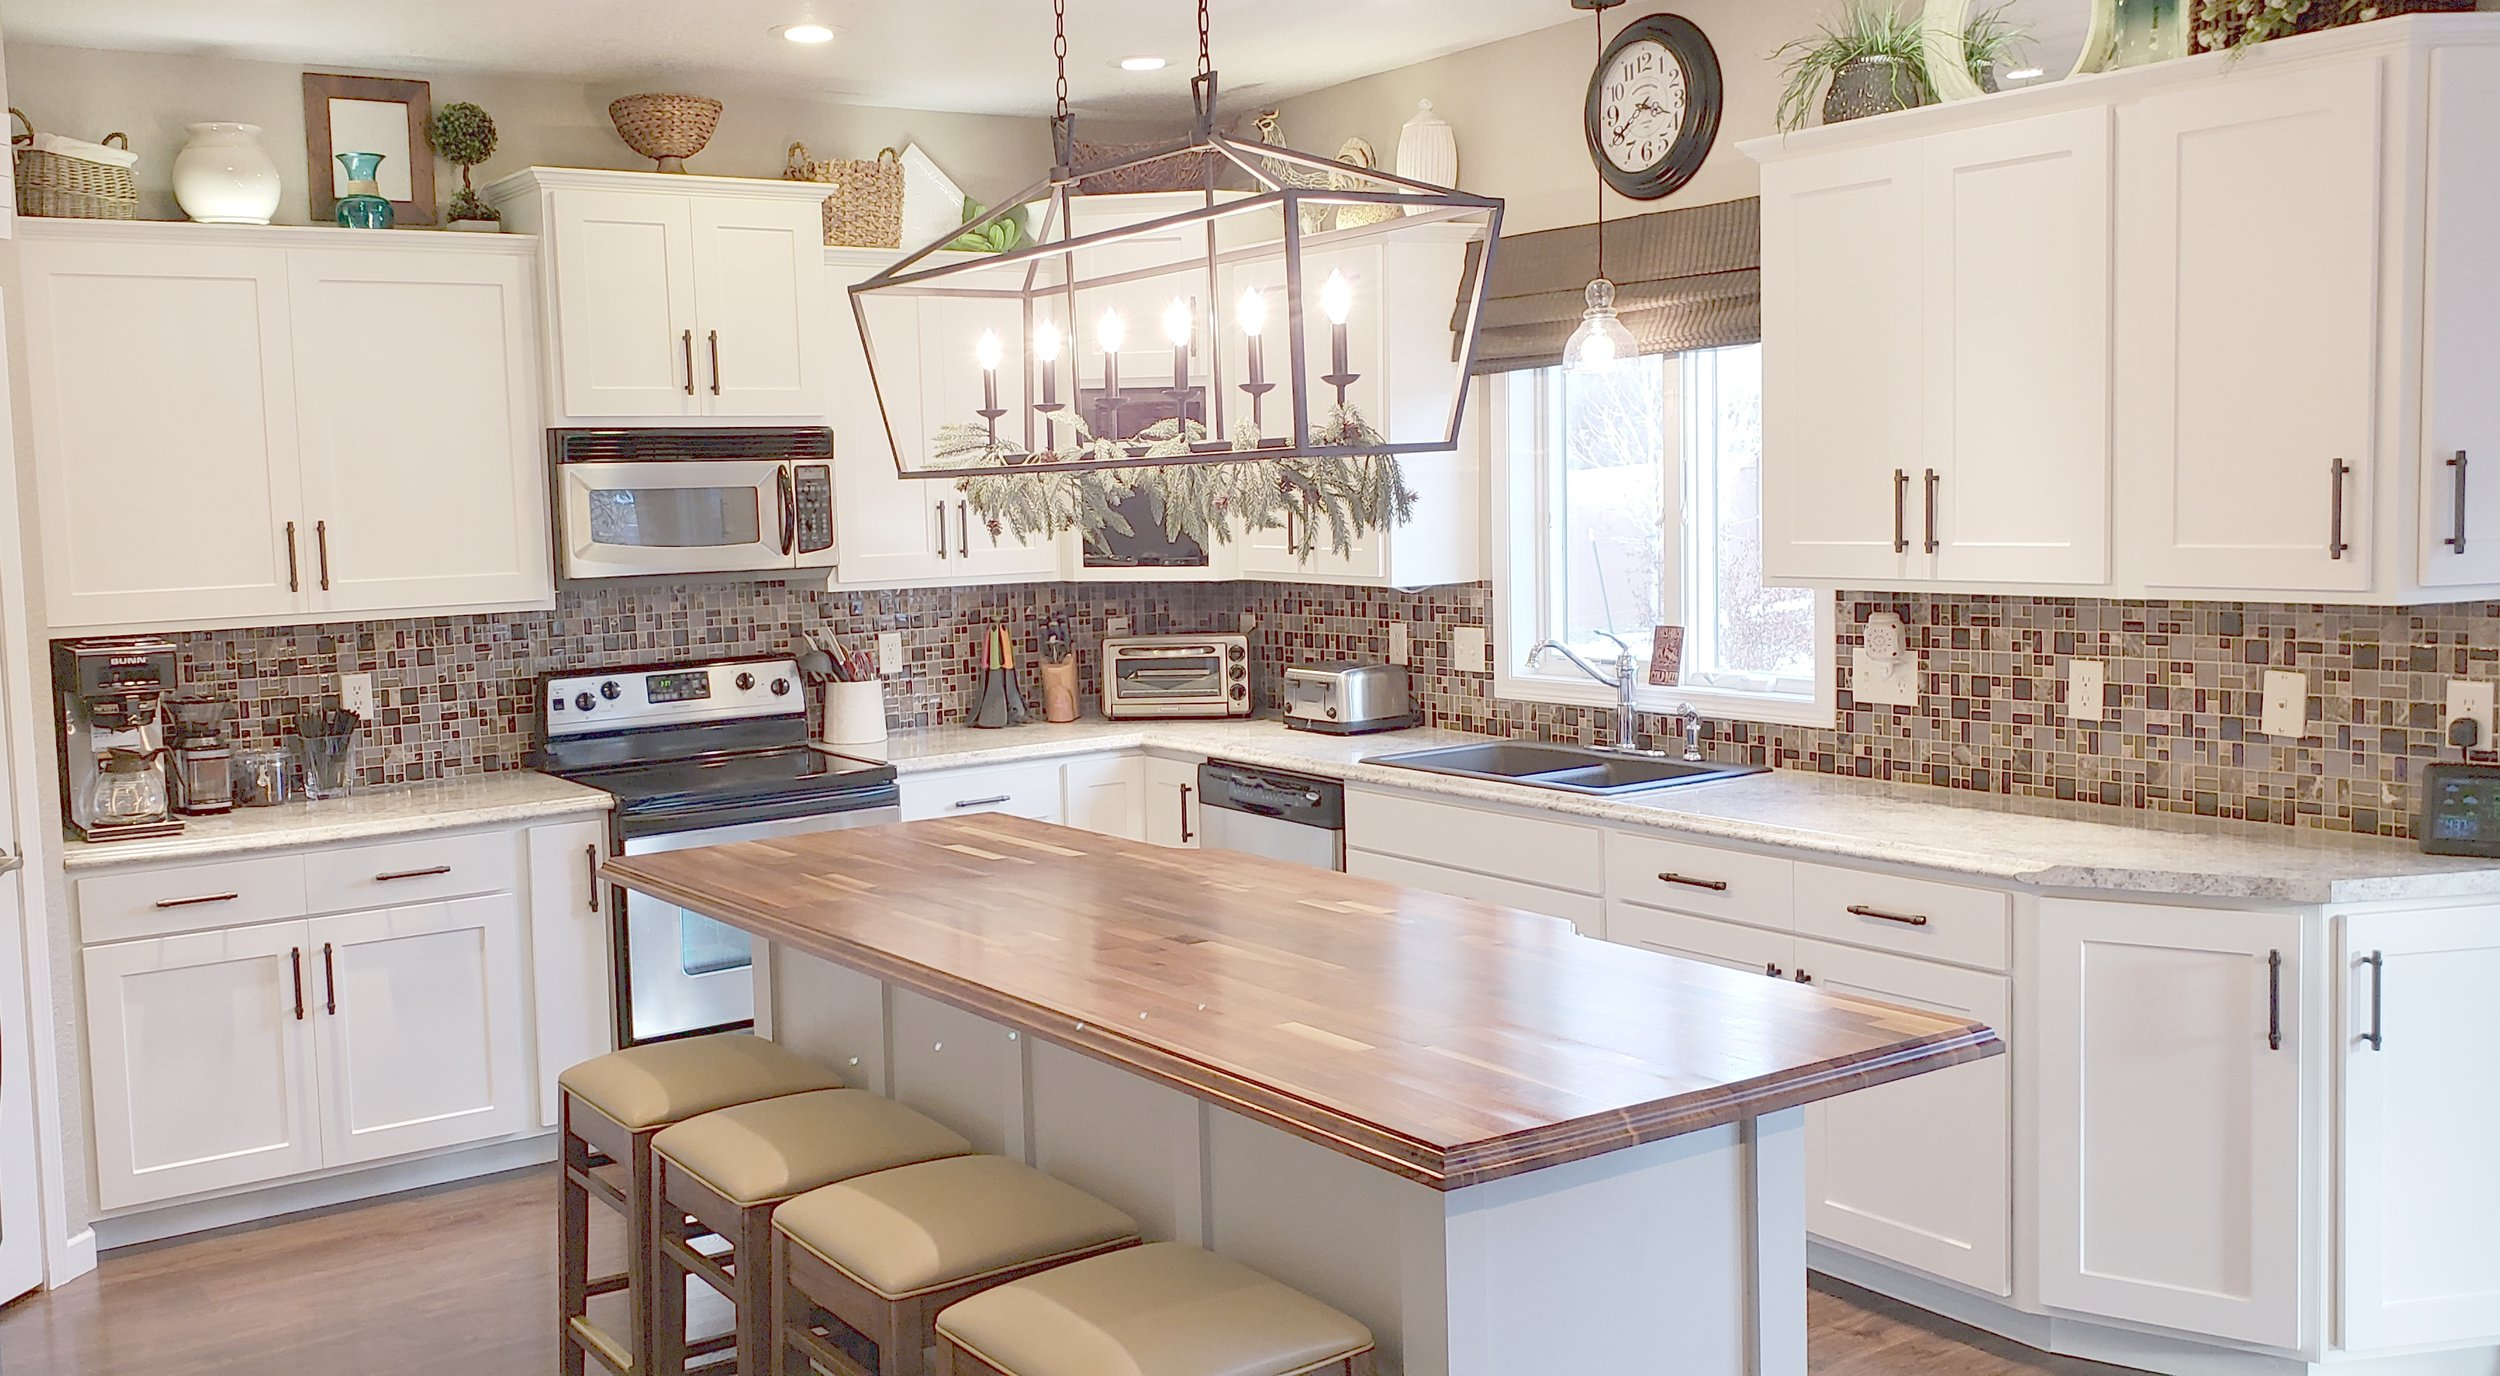 Why did I wait? - Heidi S., BismarckThis was the best home improvement money we've ever spent. It's an excellent option for adding value and beauty to your home. I only wish I had done it sooner!